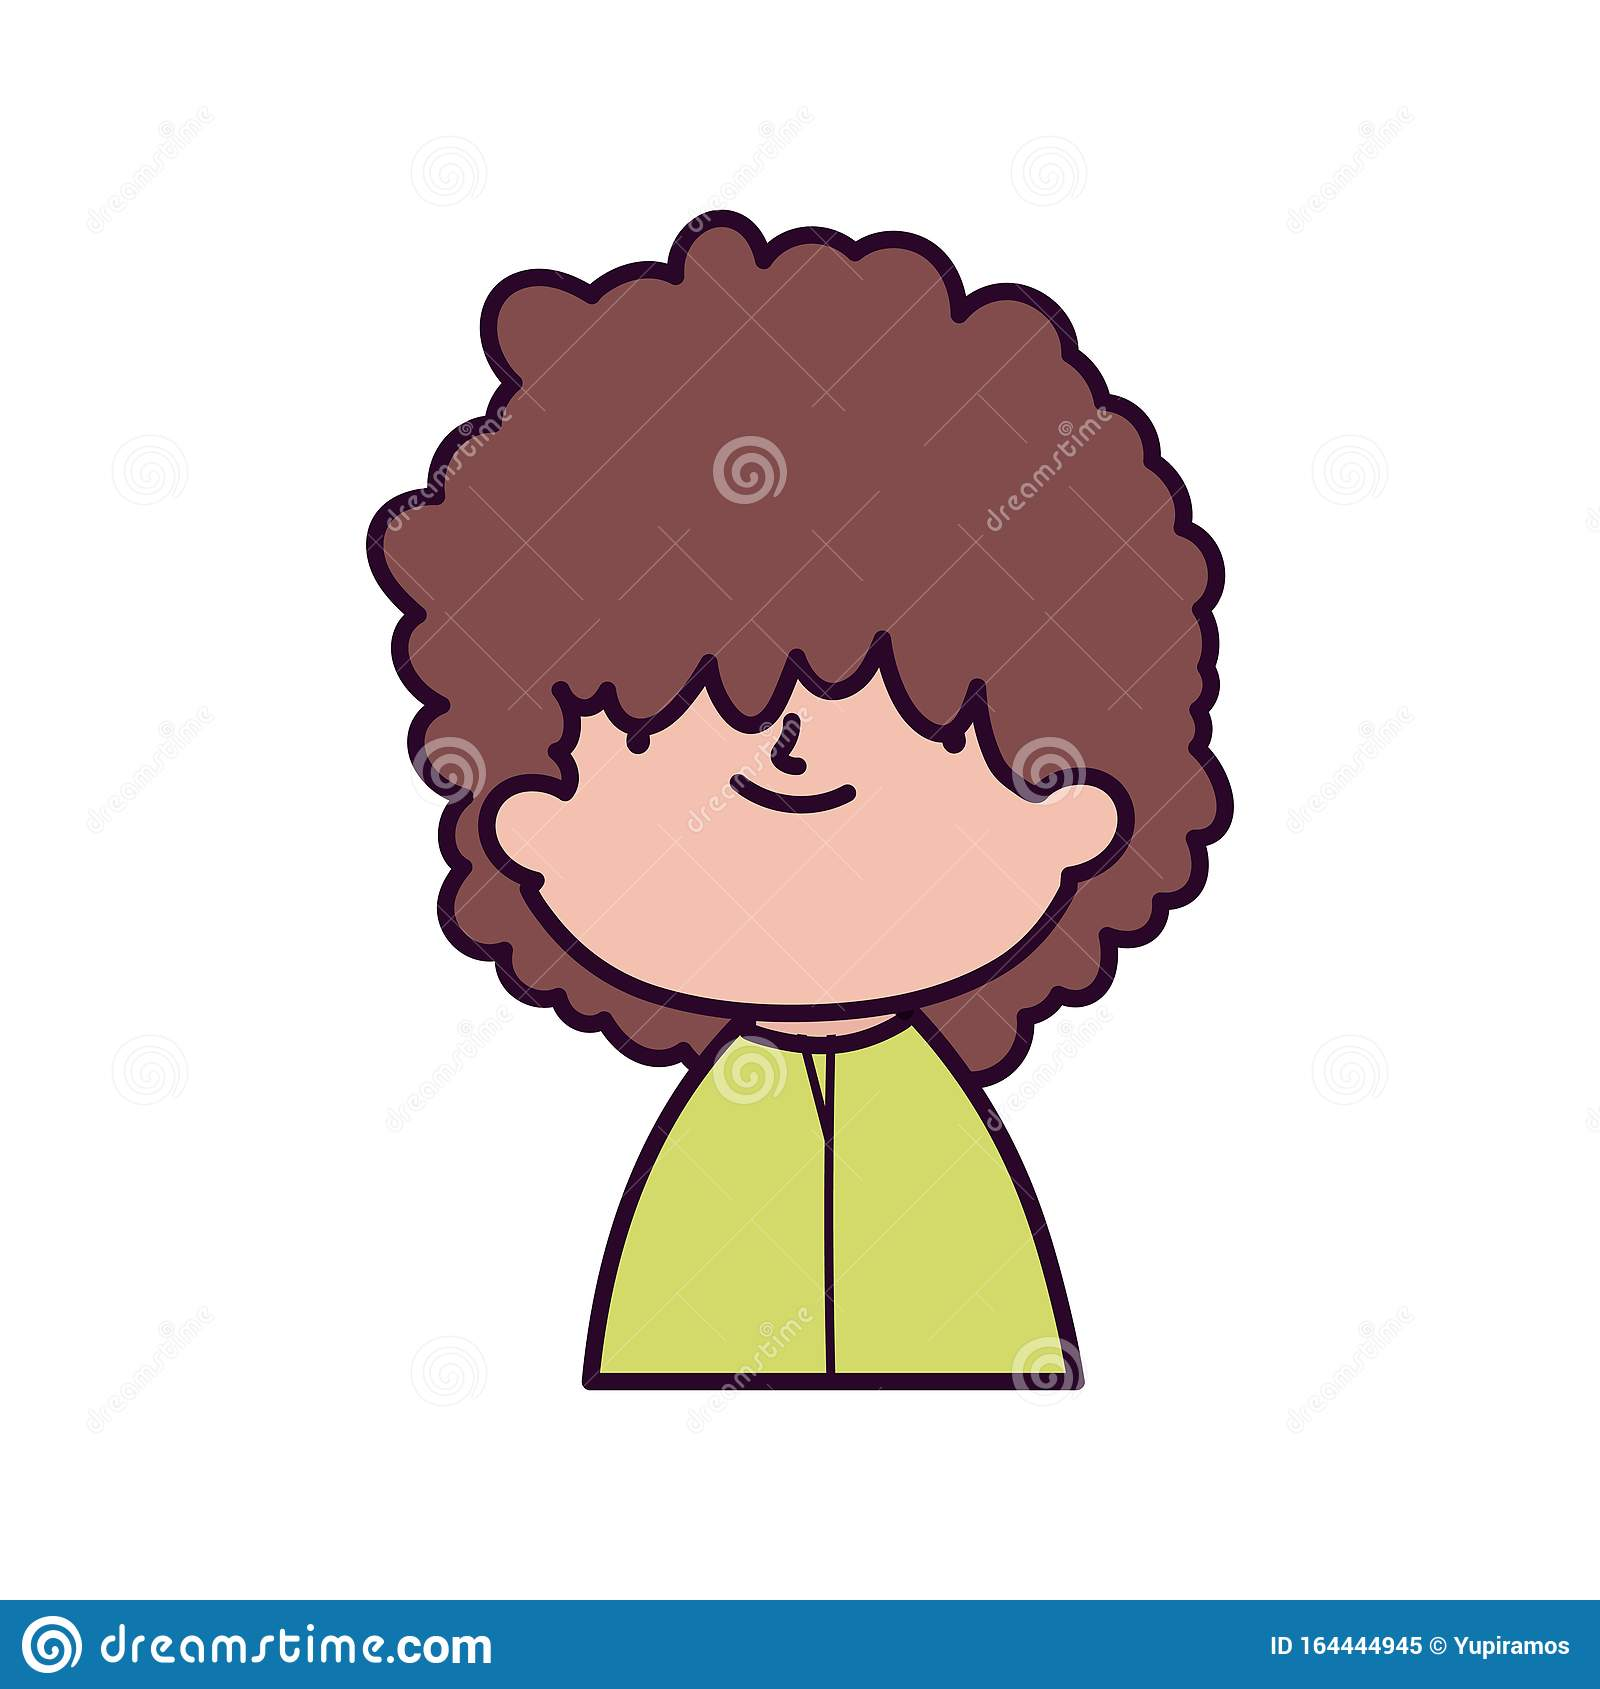 Cute Boy With Curly Hair Portrait On White Background Stock Vector Illustration Of Child Smile 164444945